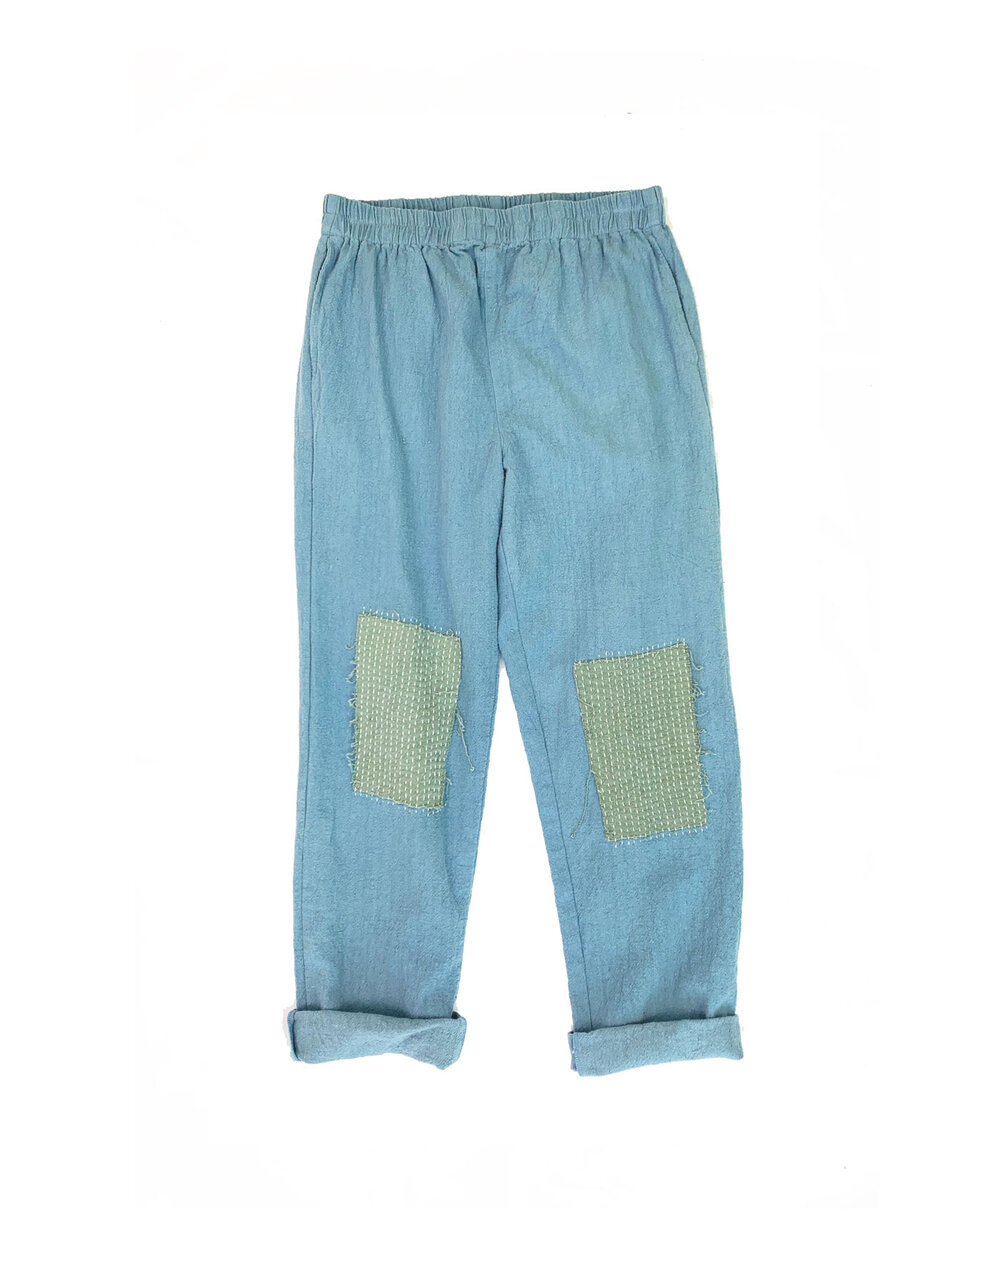 Lounger Pants in Patched Indigo